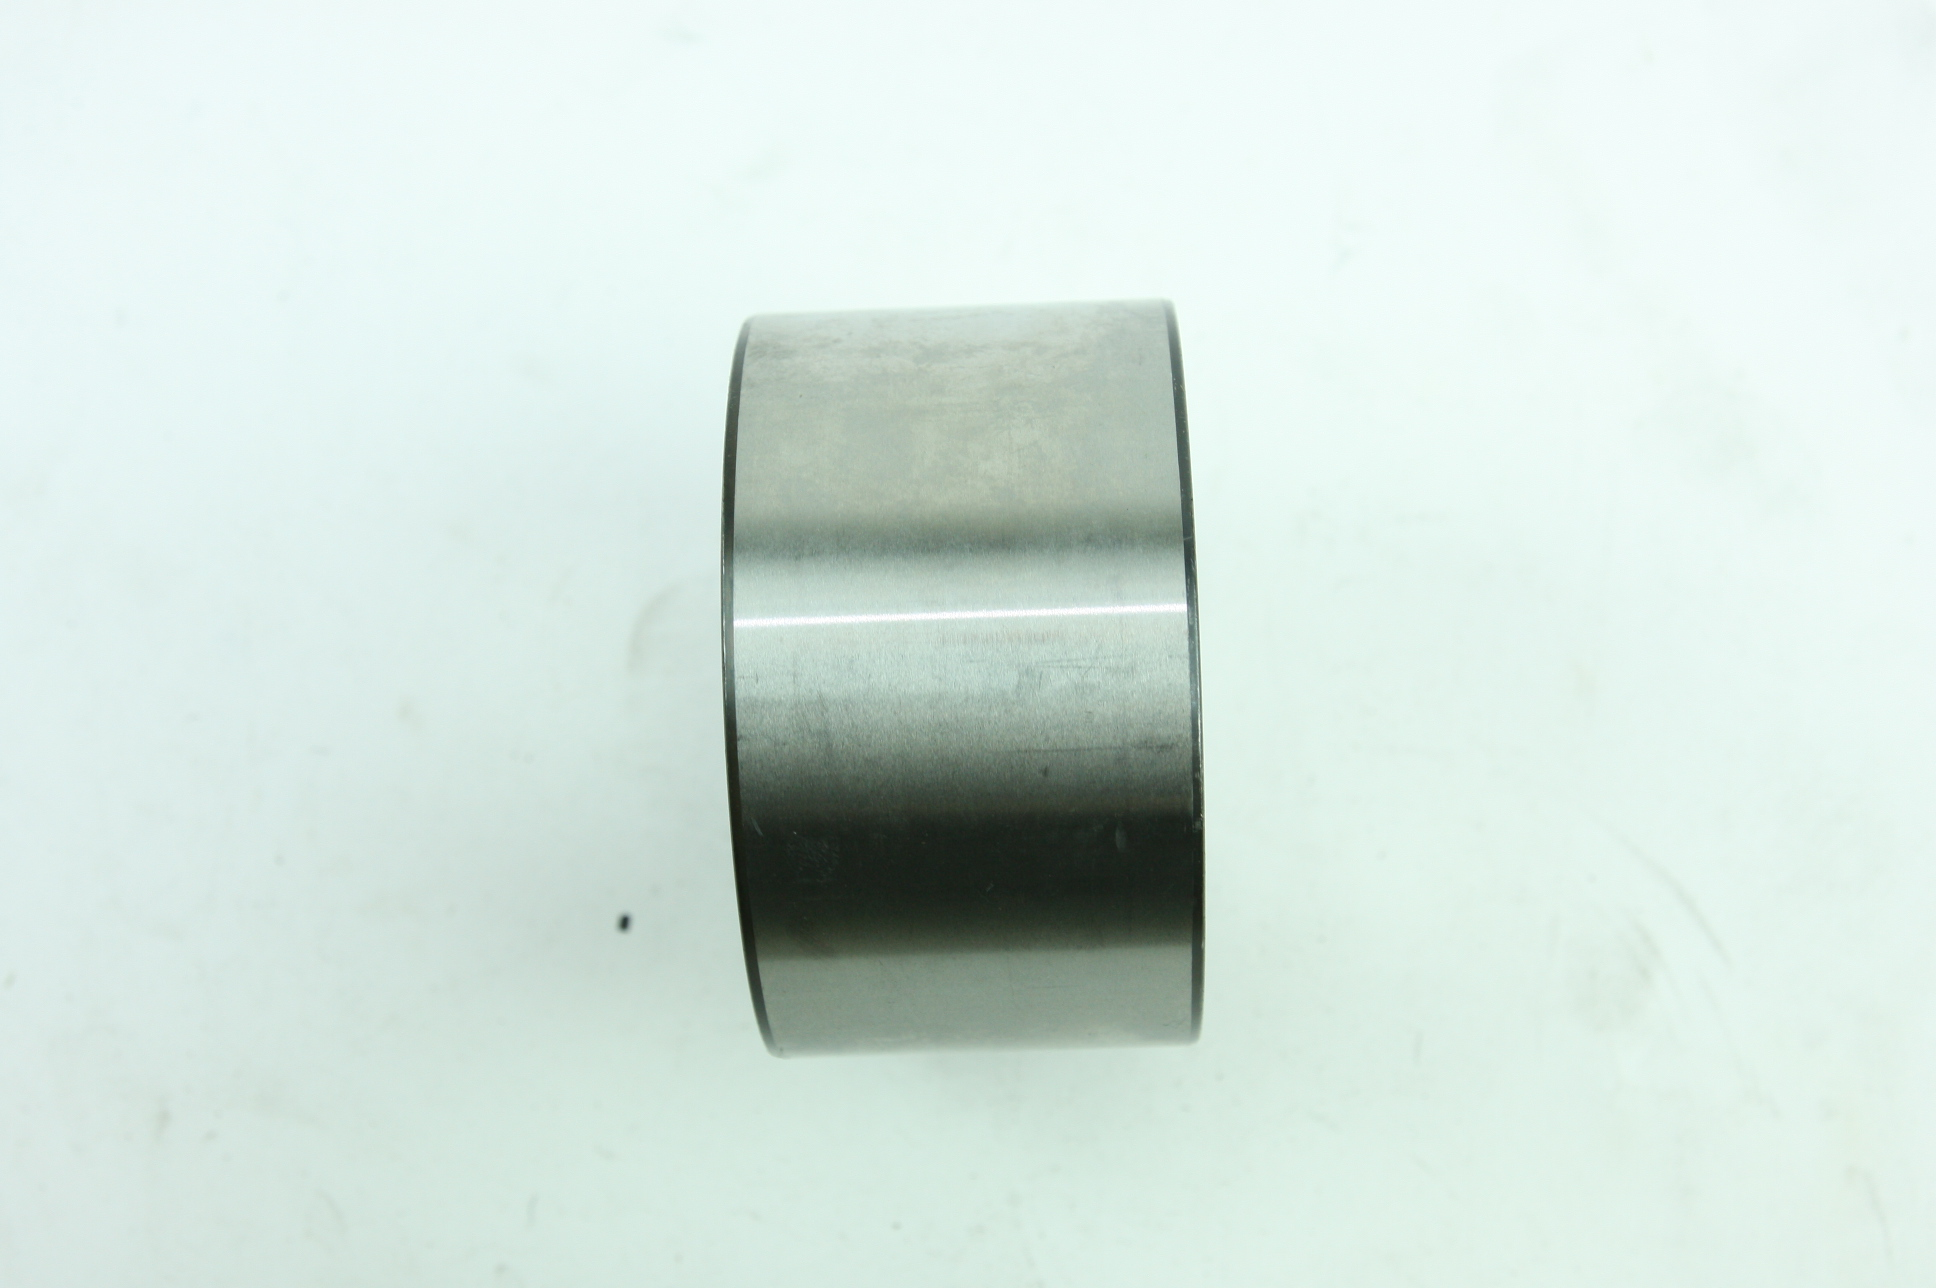 * New Genuine OEM Nissan 402102Y000 Front Wheel Bearing Fast Free Shipping - image 4